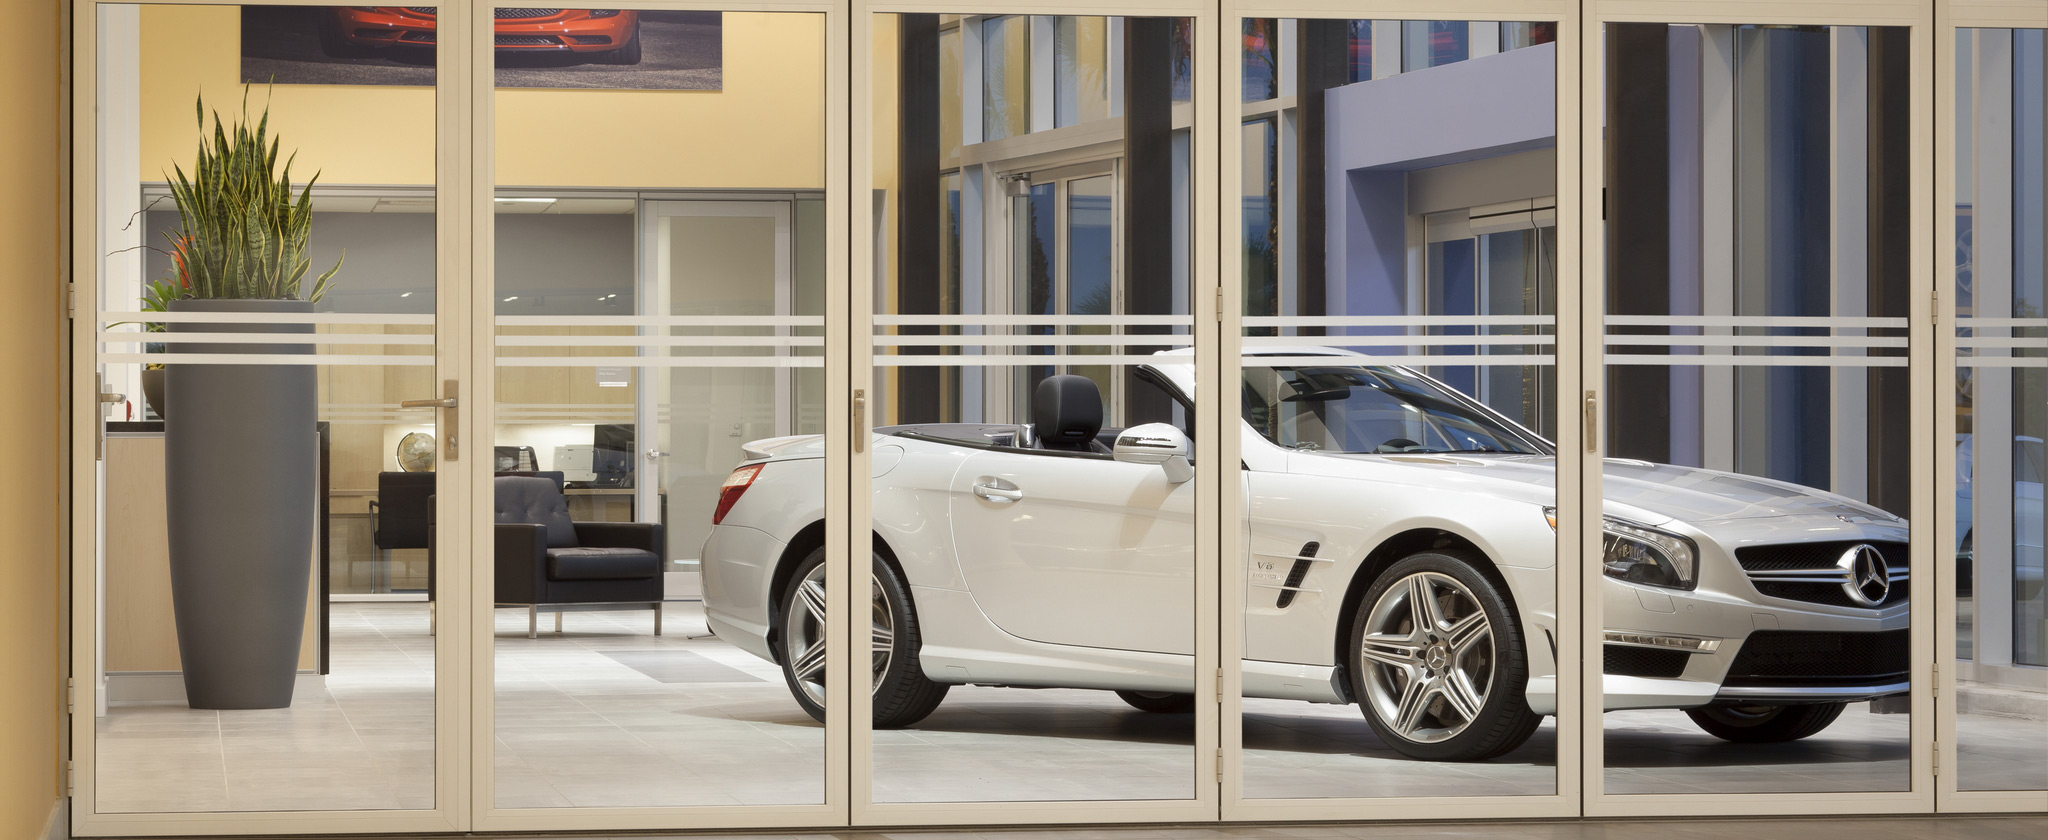 white convertible car parked in front of folding interior moveable glass doors